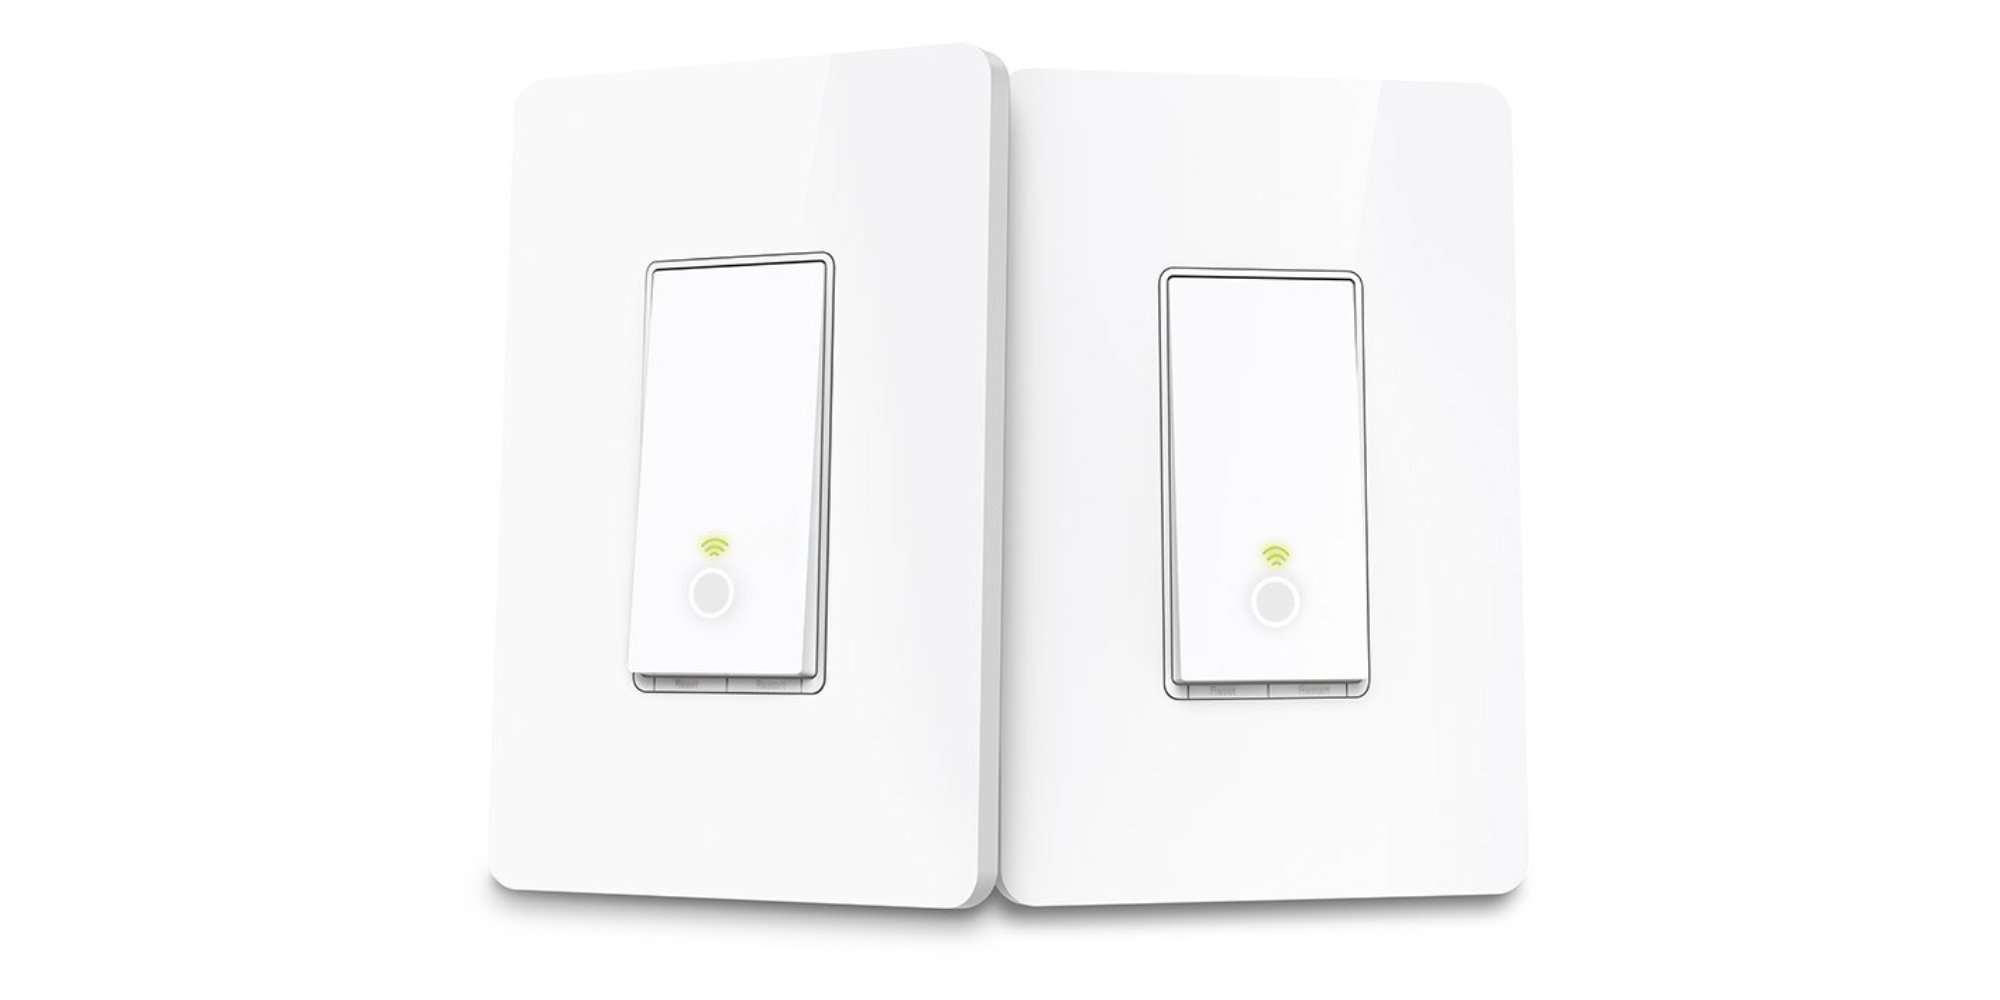 Slash 35% off TP-Link's 3-Way Smart Light Switch Kit at $35, more from $17.50